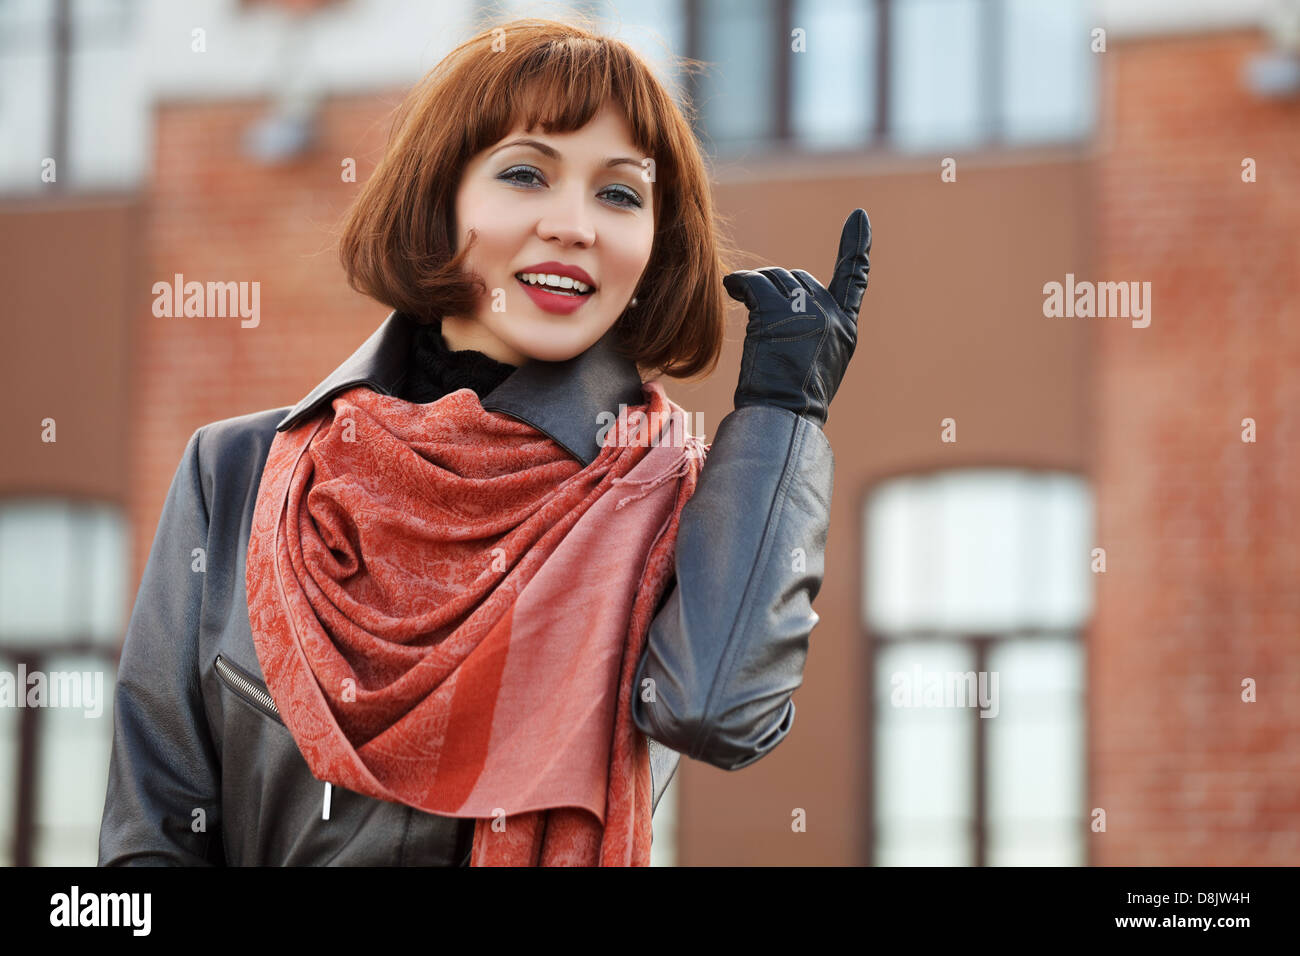 Young woman with a finger pointing up - Stock Image